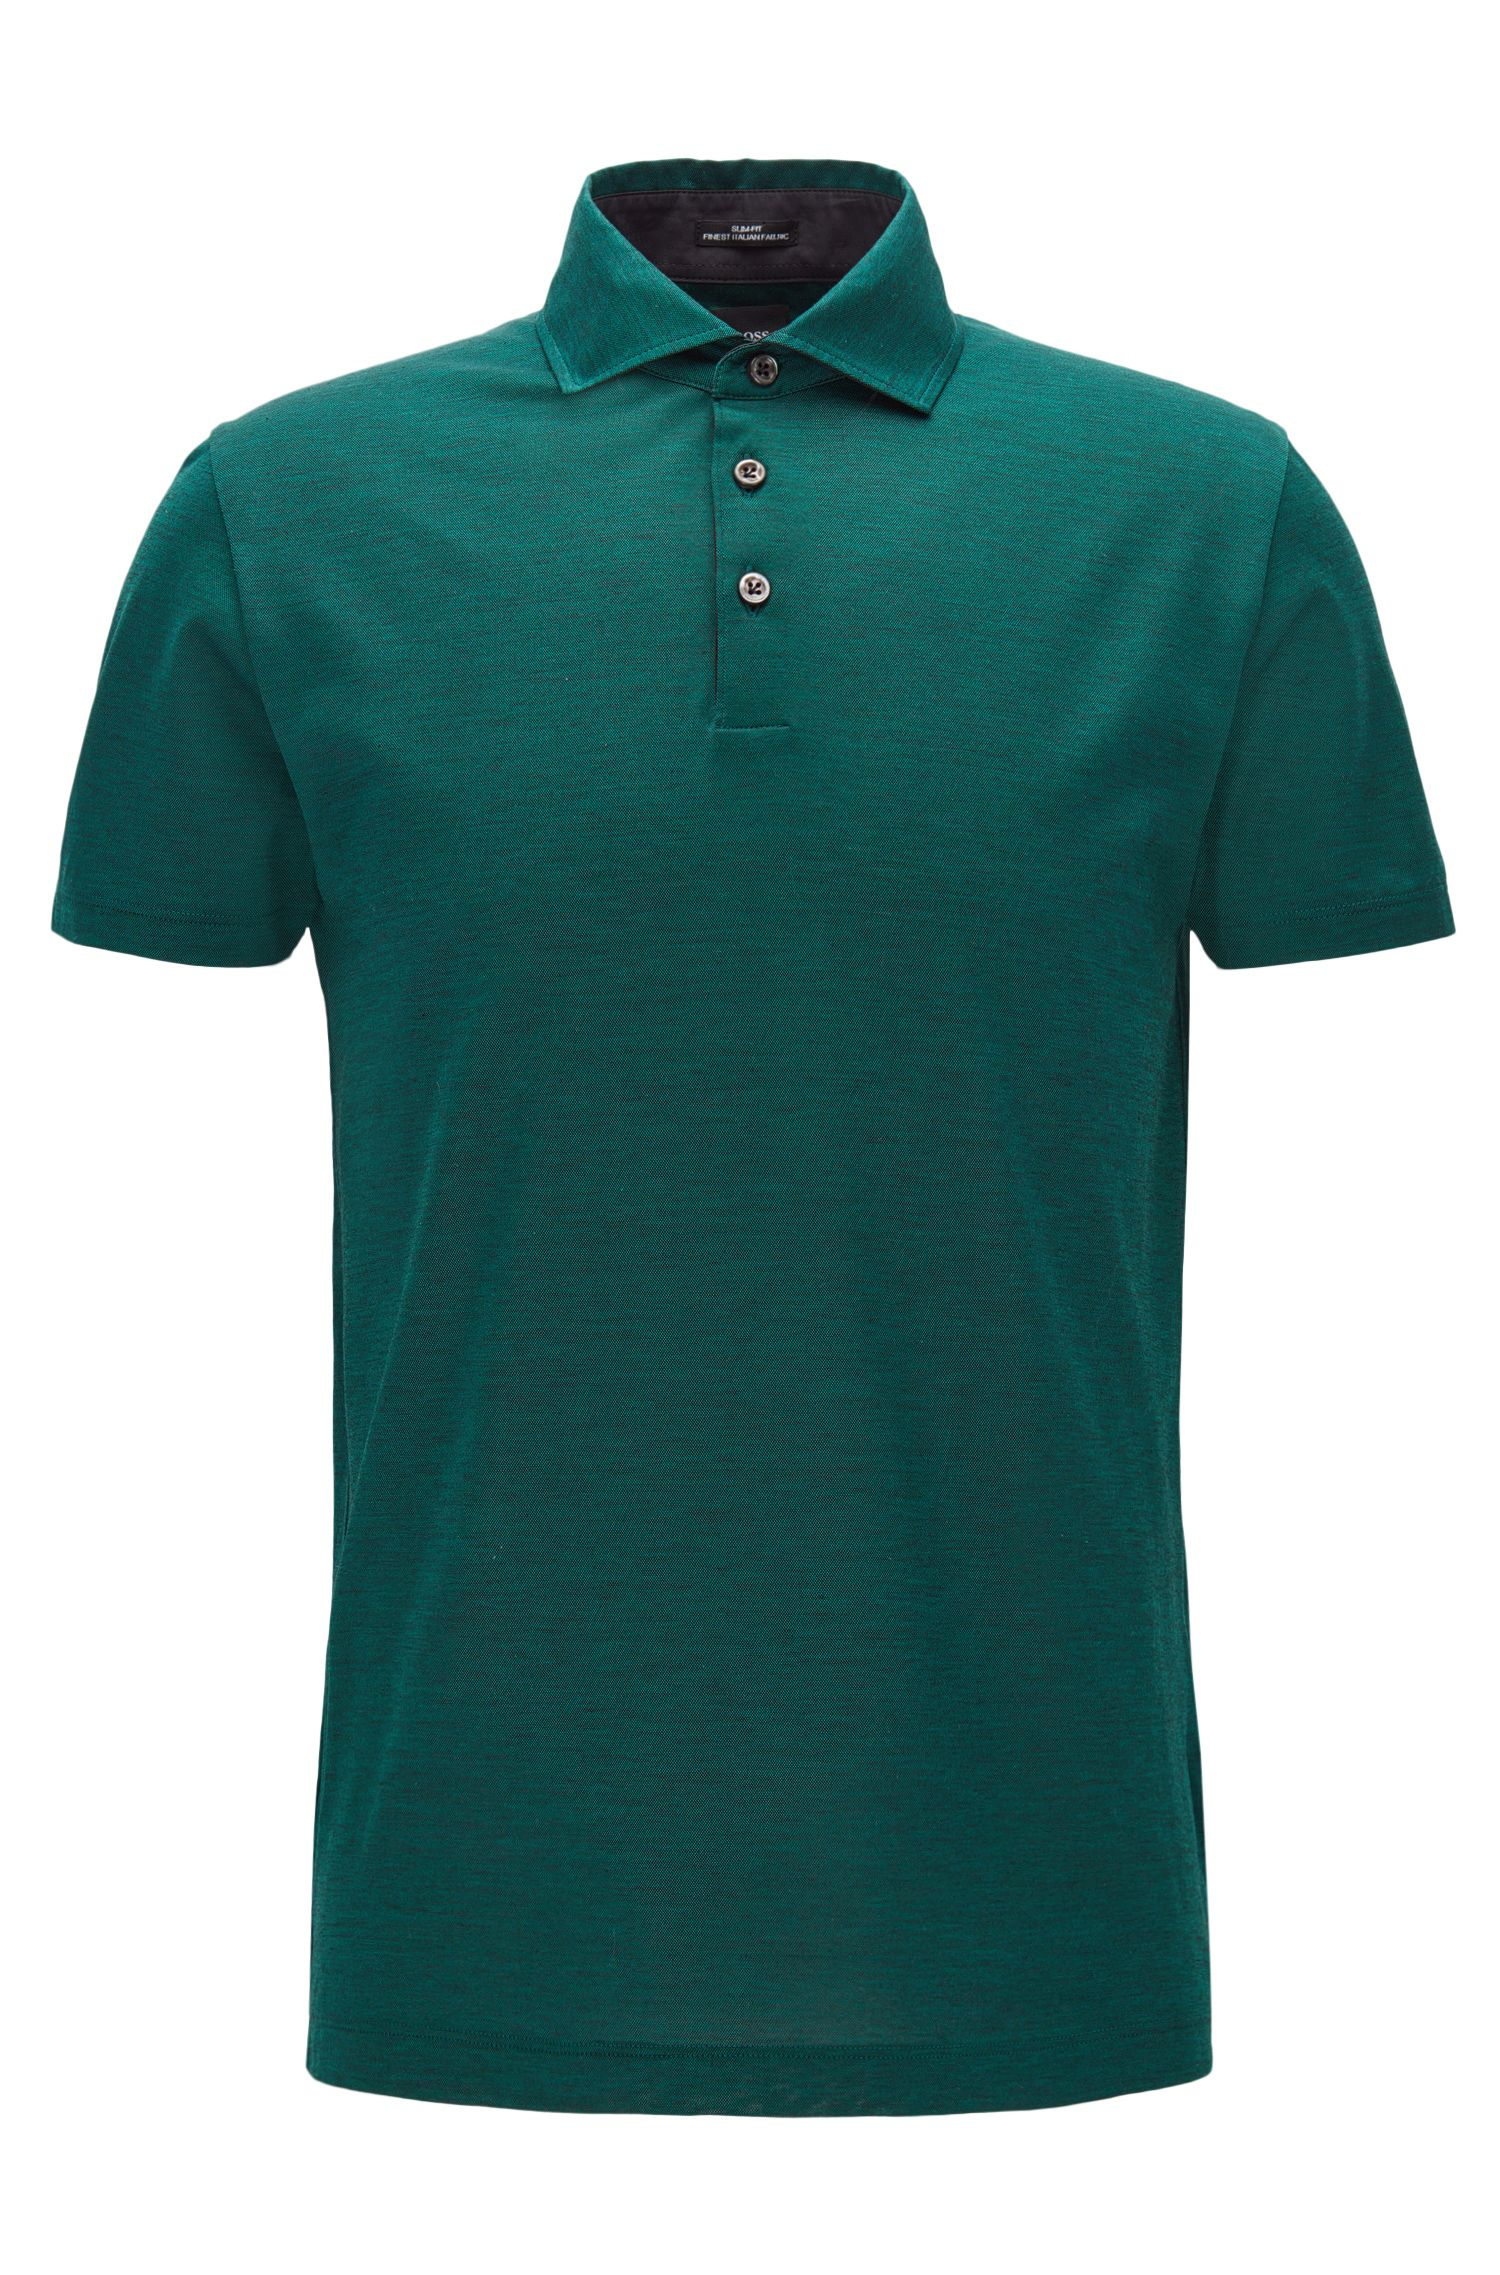 Jacquard Italian Cotton Polo Shirt, Slim Fit | T-Pryde